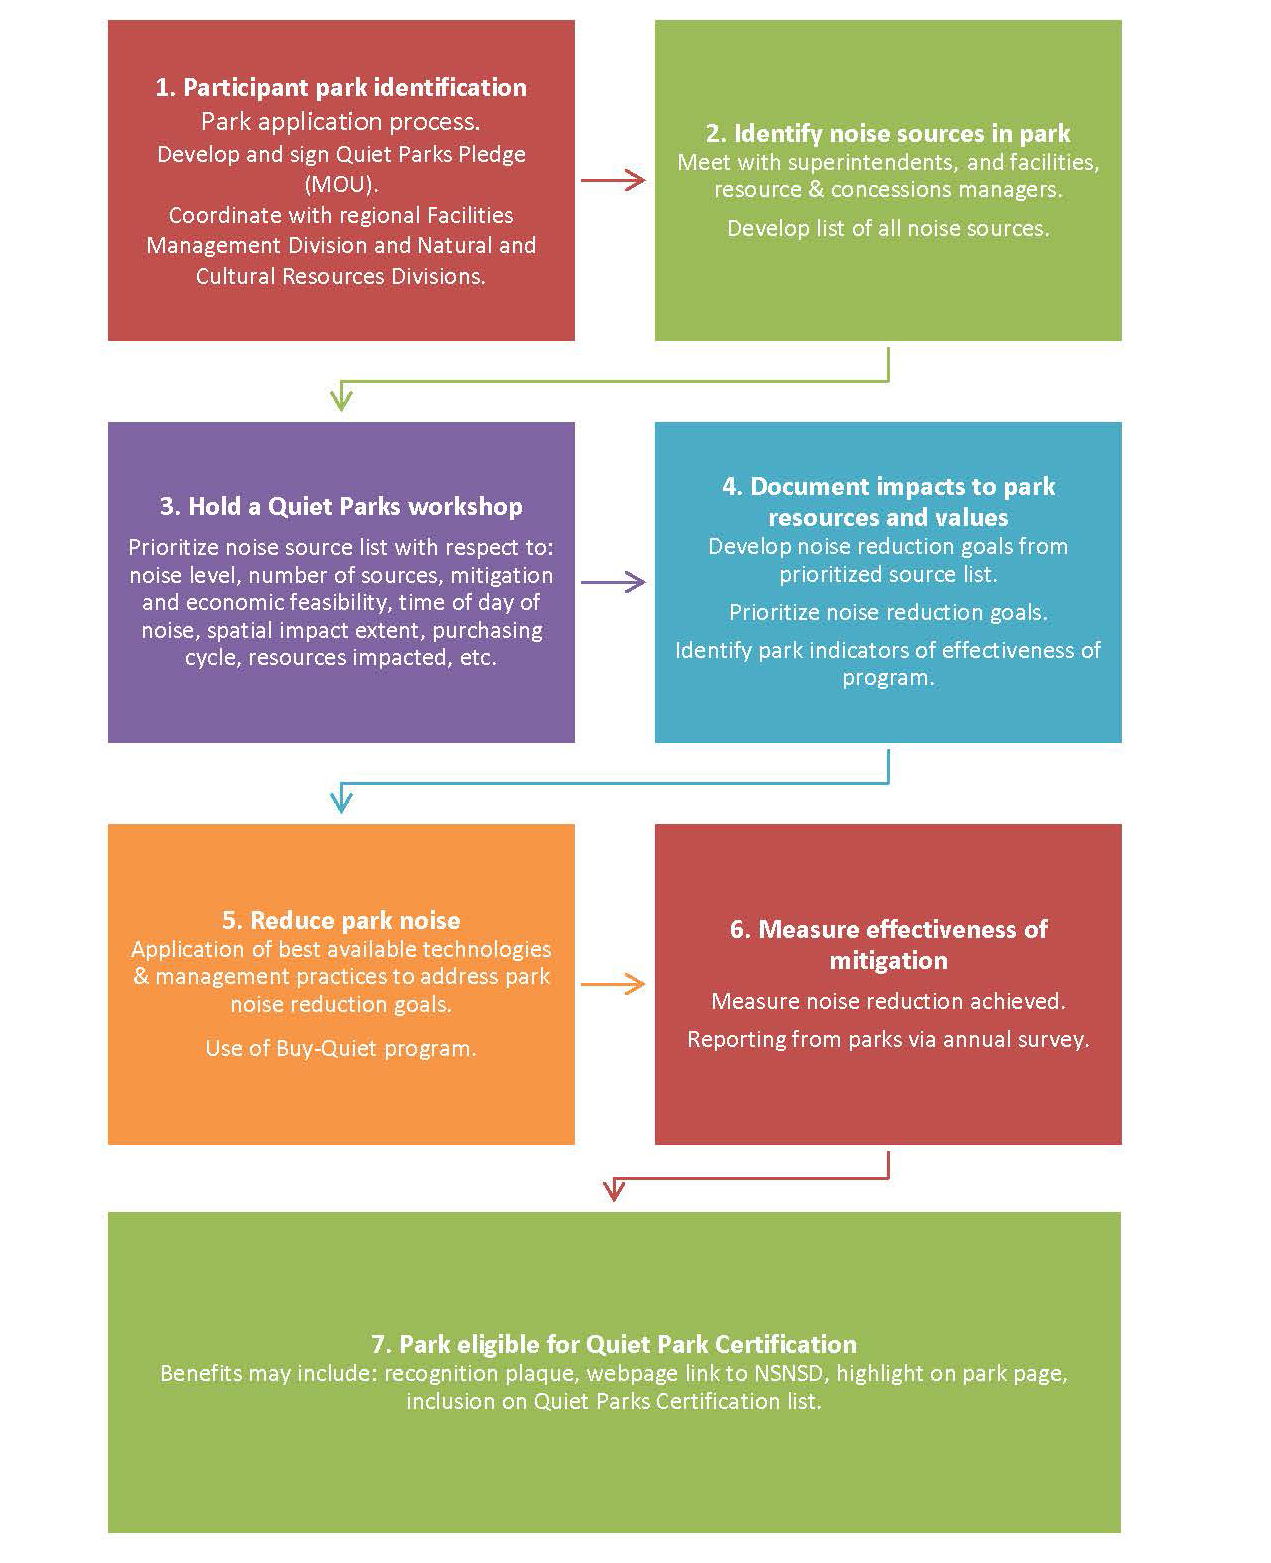 flowchart outlines process for obtaining quiet park certification.